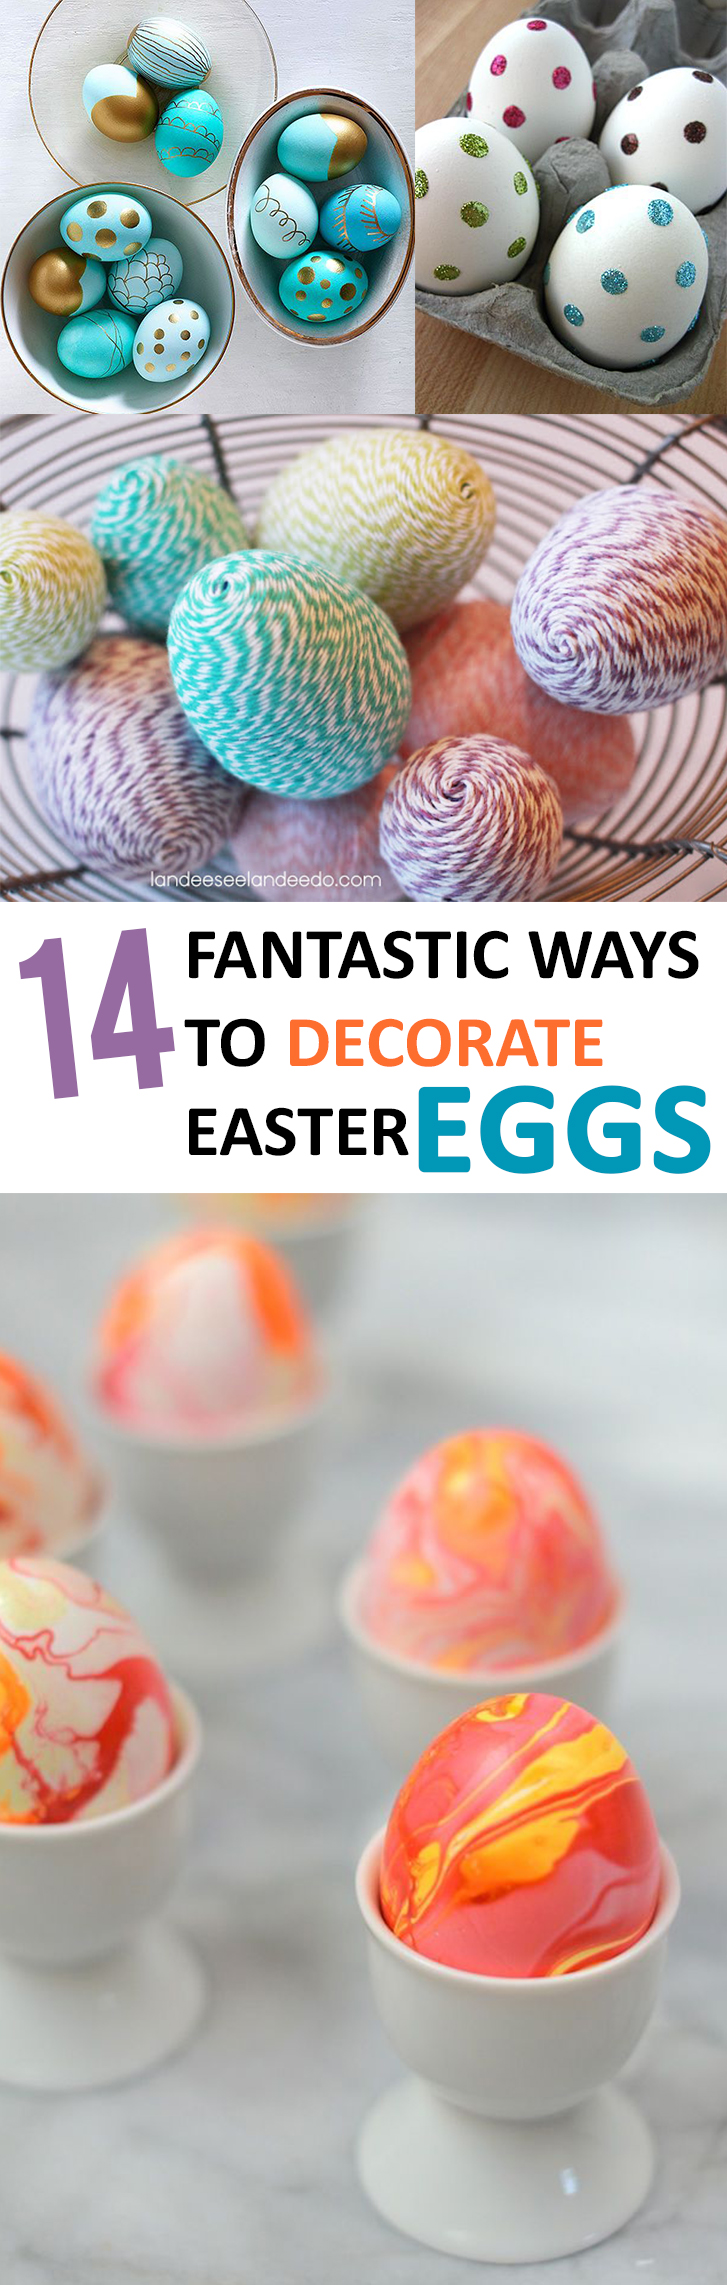 14 Fantastic Ways to Decorate Easter Eggs